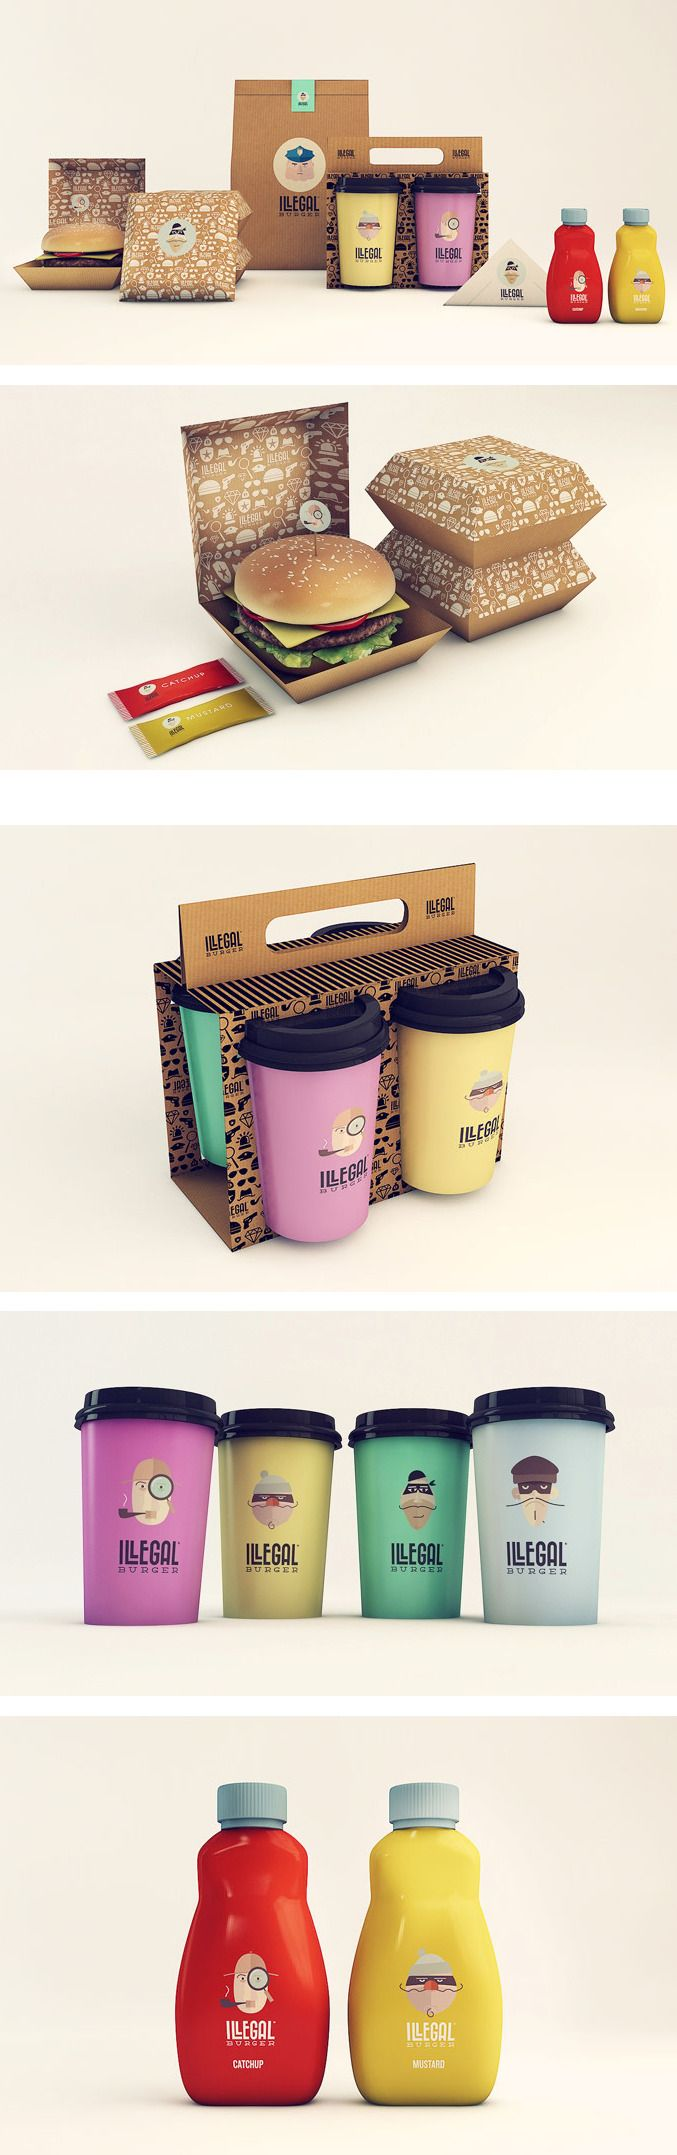 #Fastfood #Packaging #Design